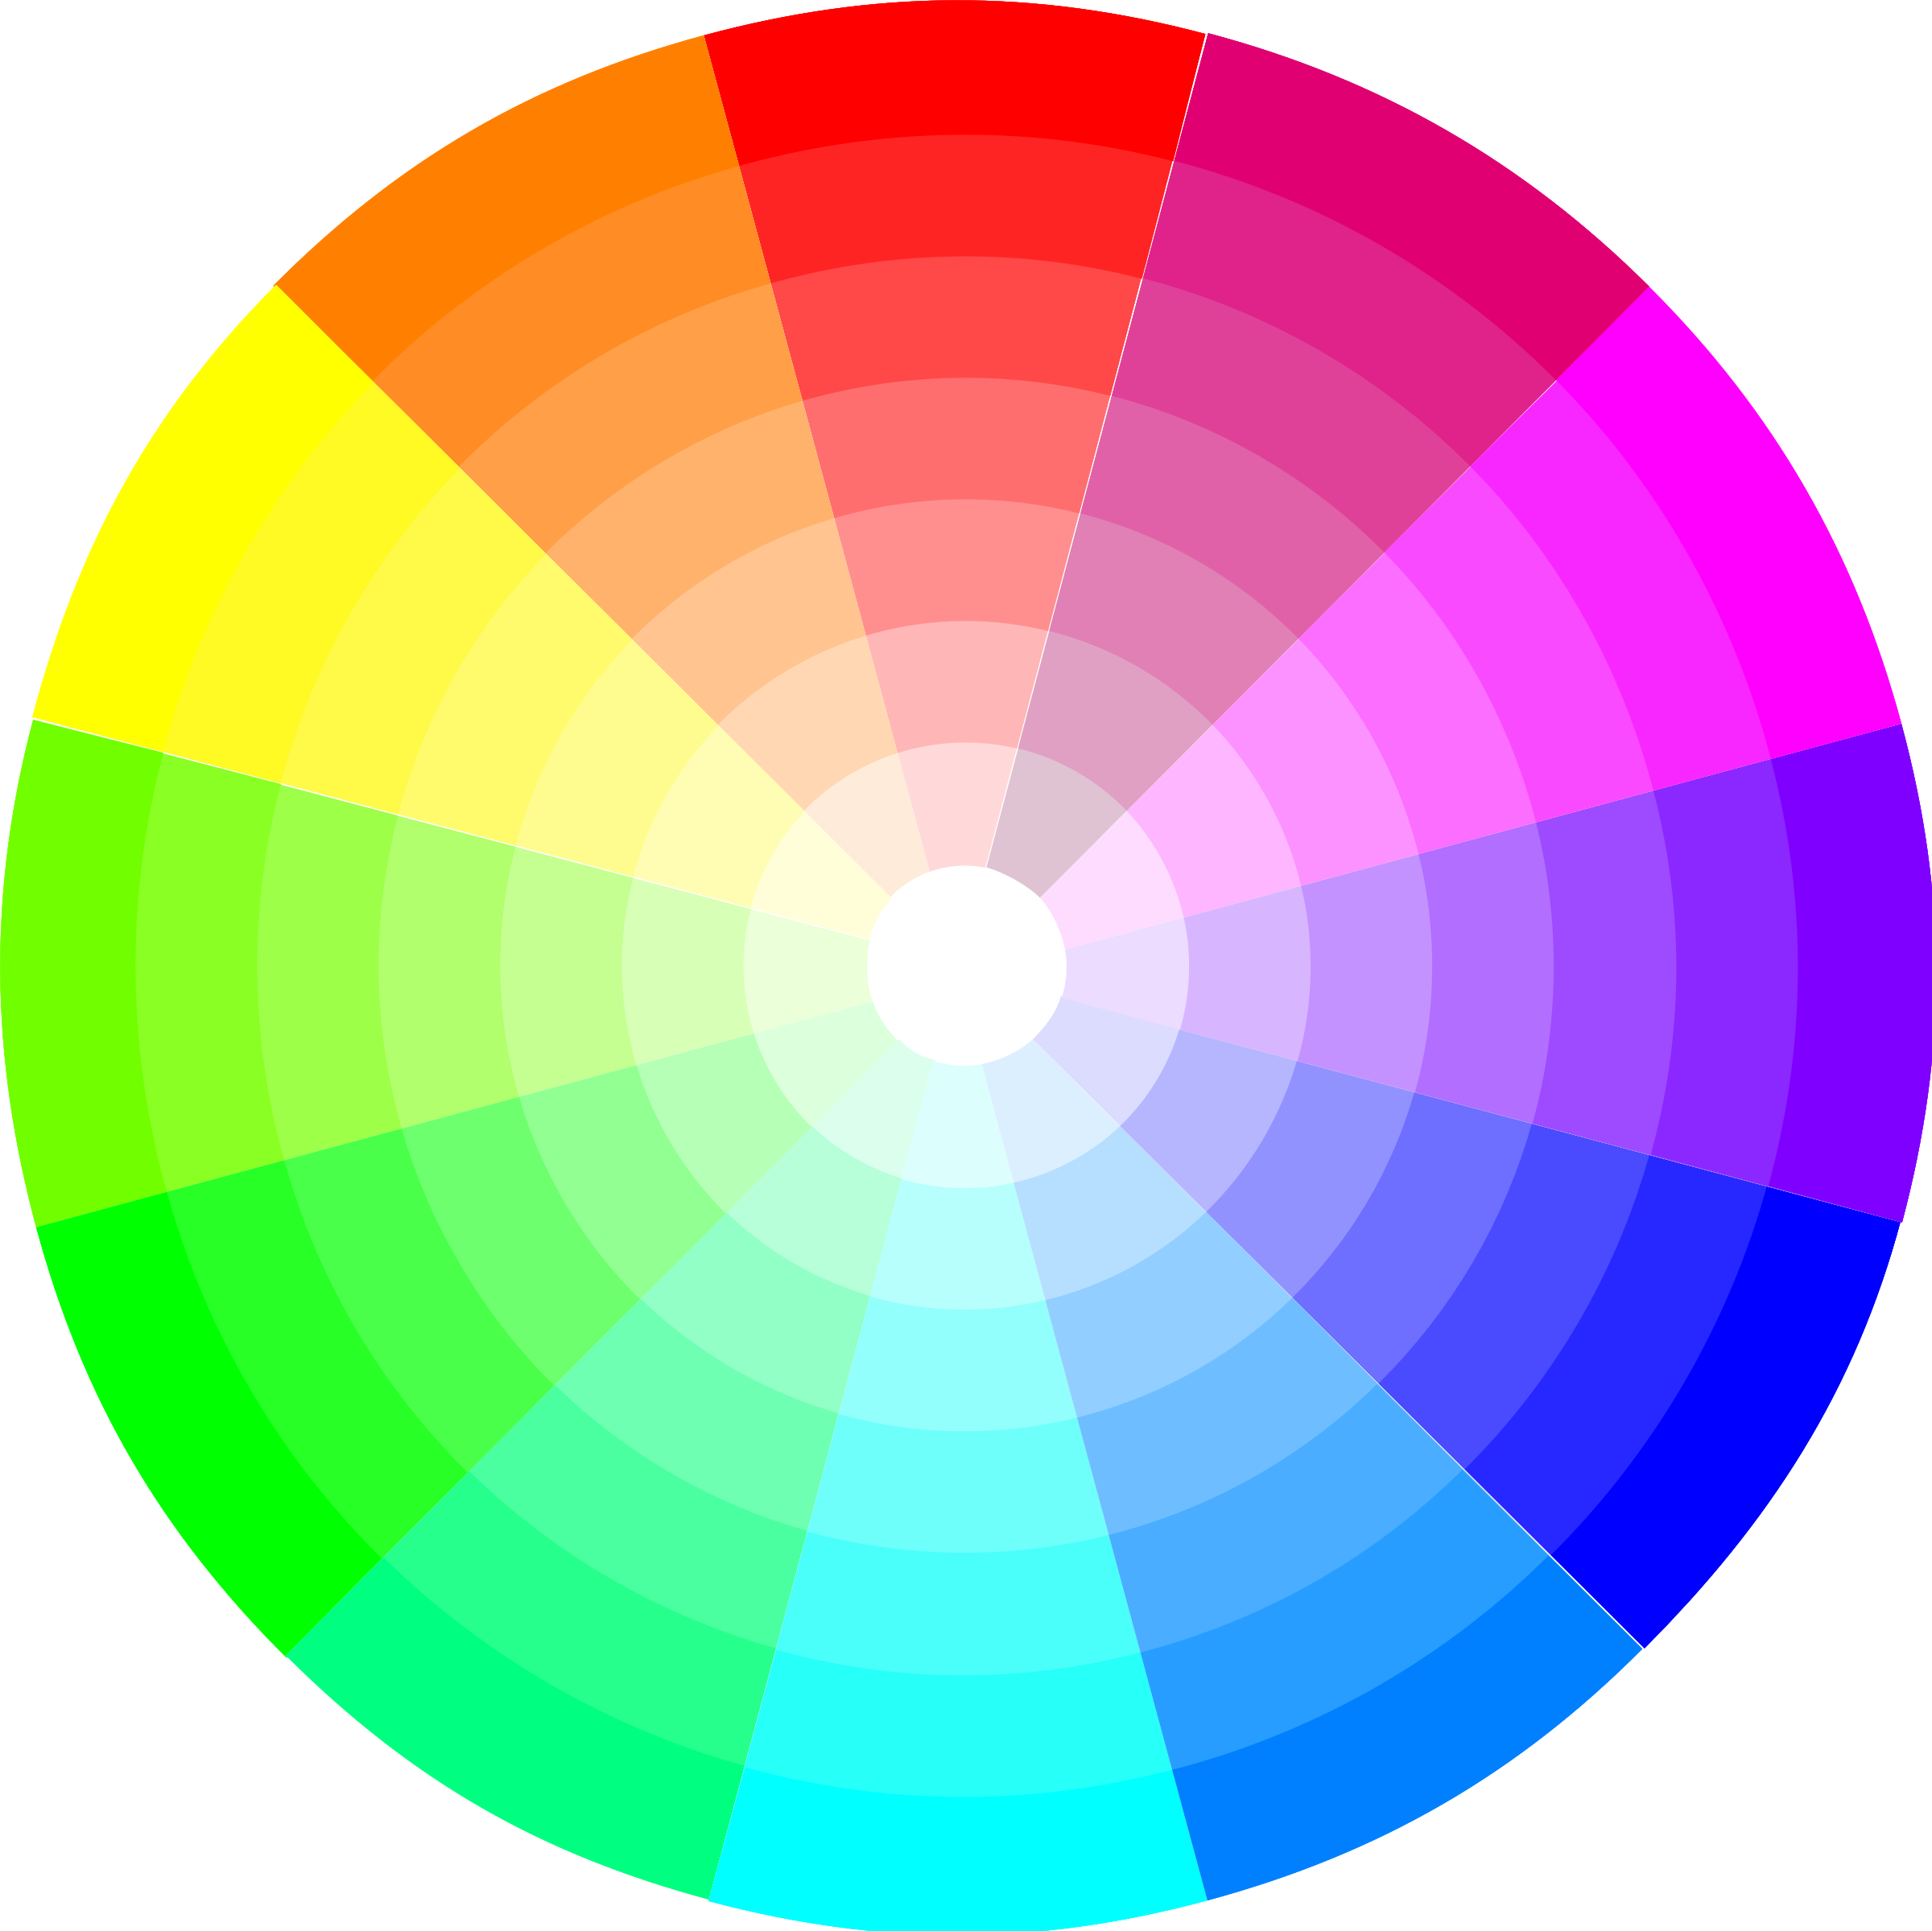 Wheel composed of all the colors in the color spectrum